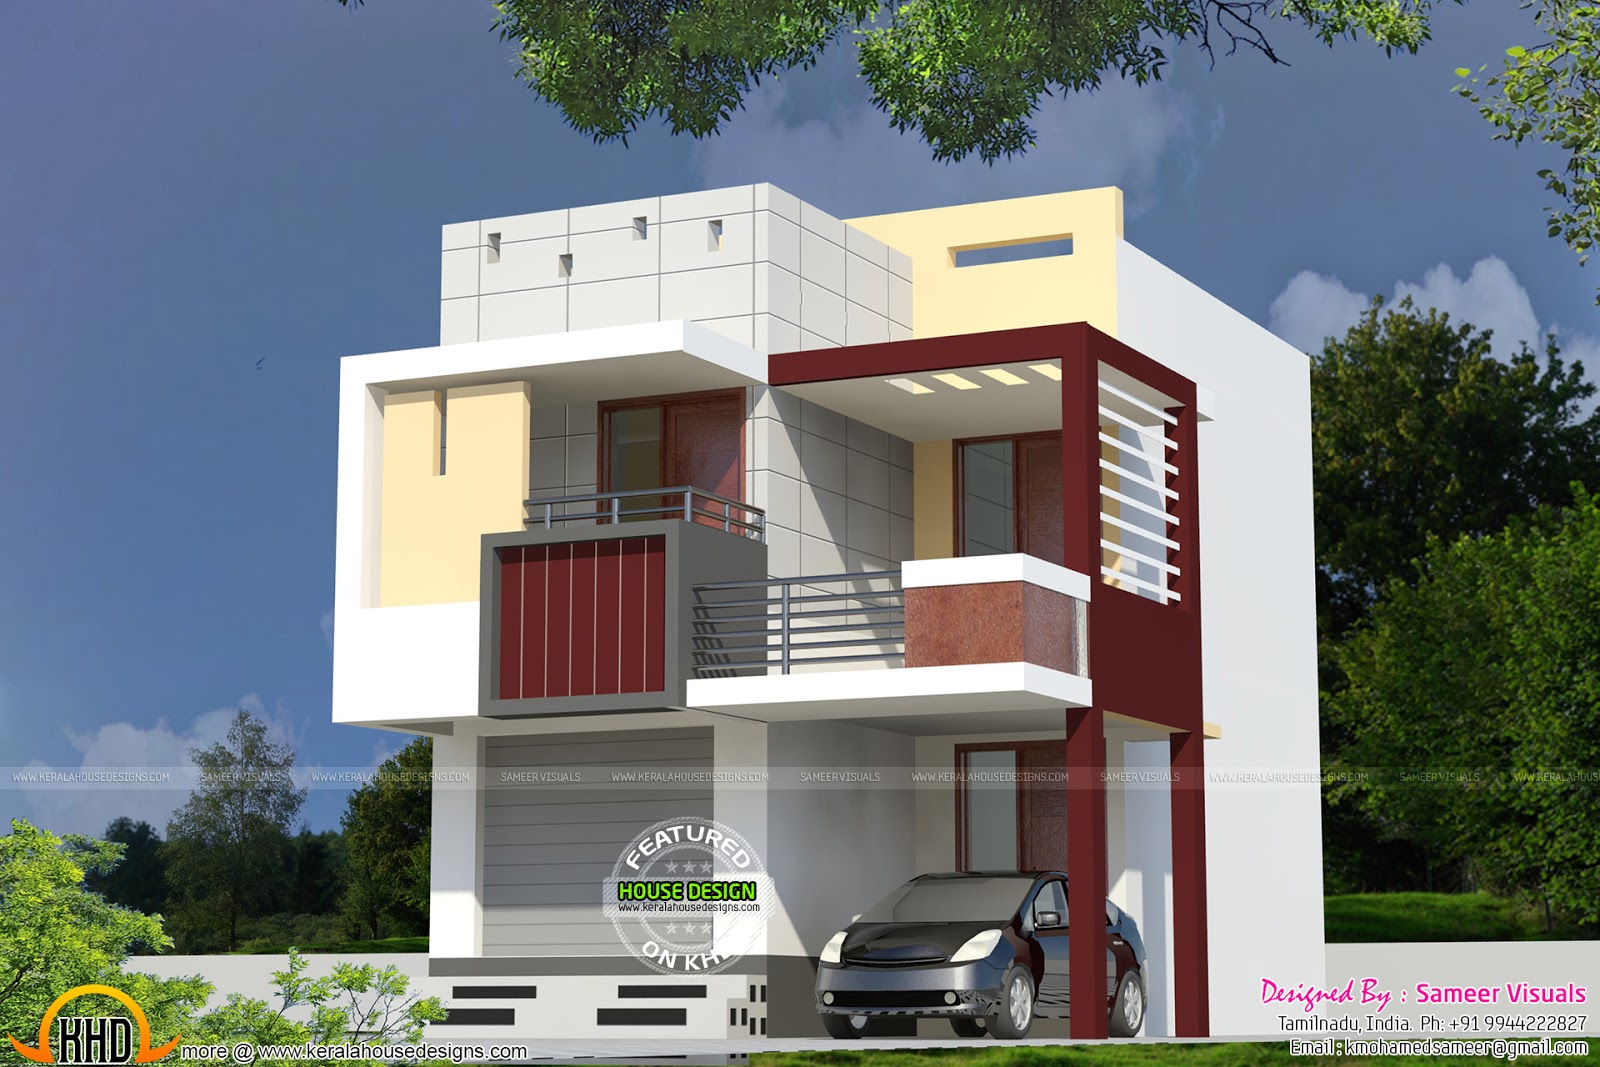 Small houses house elevation and 3d rendering on pinterest for Home designs small